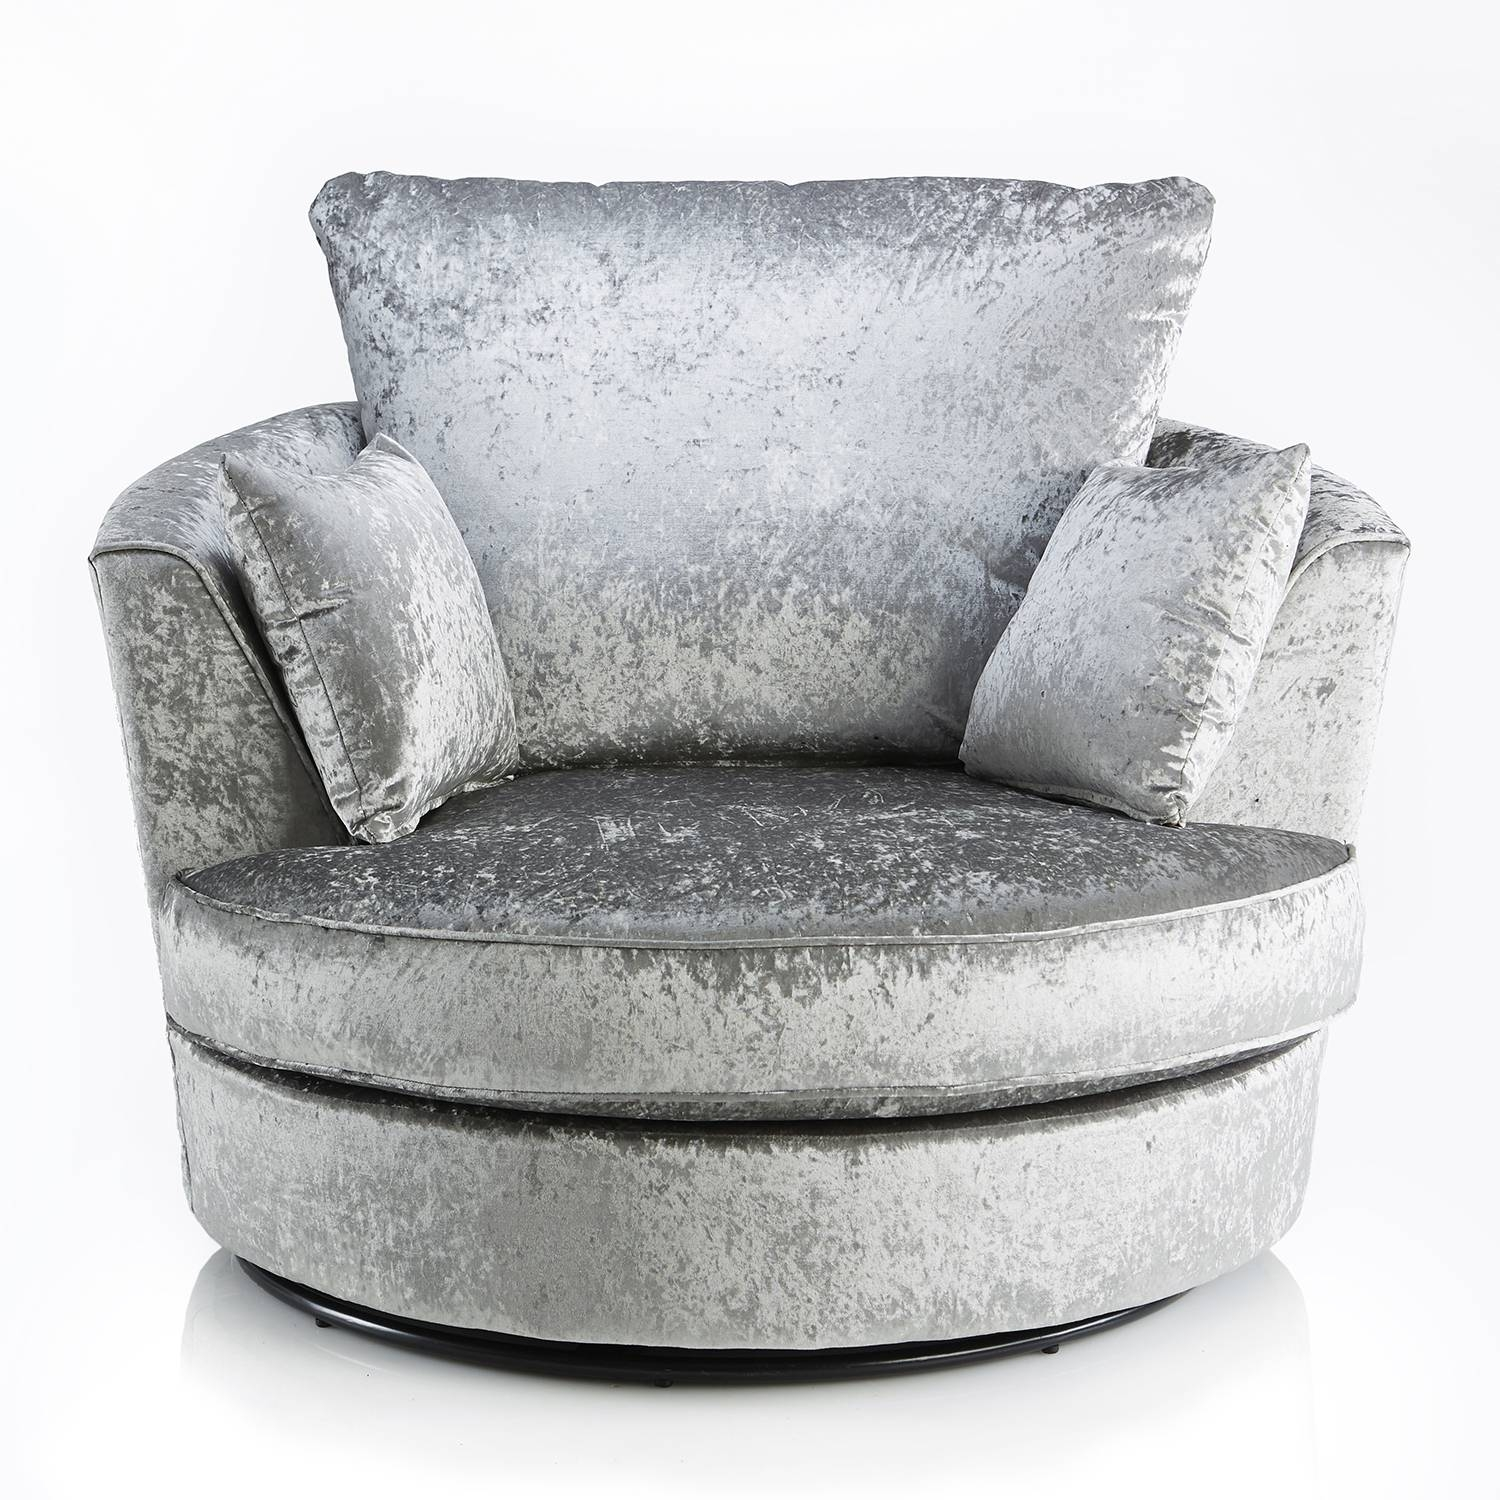 Crushed Velvet Furniture | Sofas, Beds, Chairs, Cushions within Sofa With Swivel Chair (Image 14 of 30)